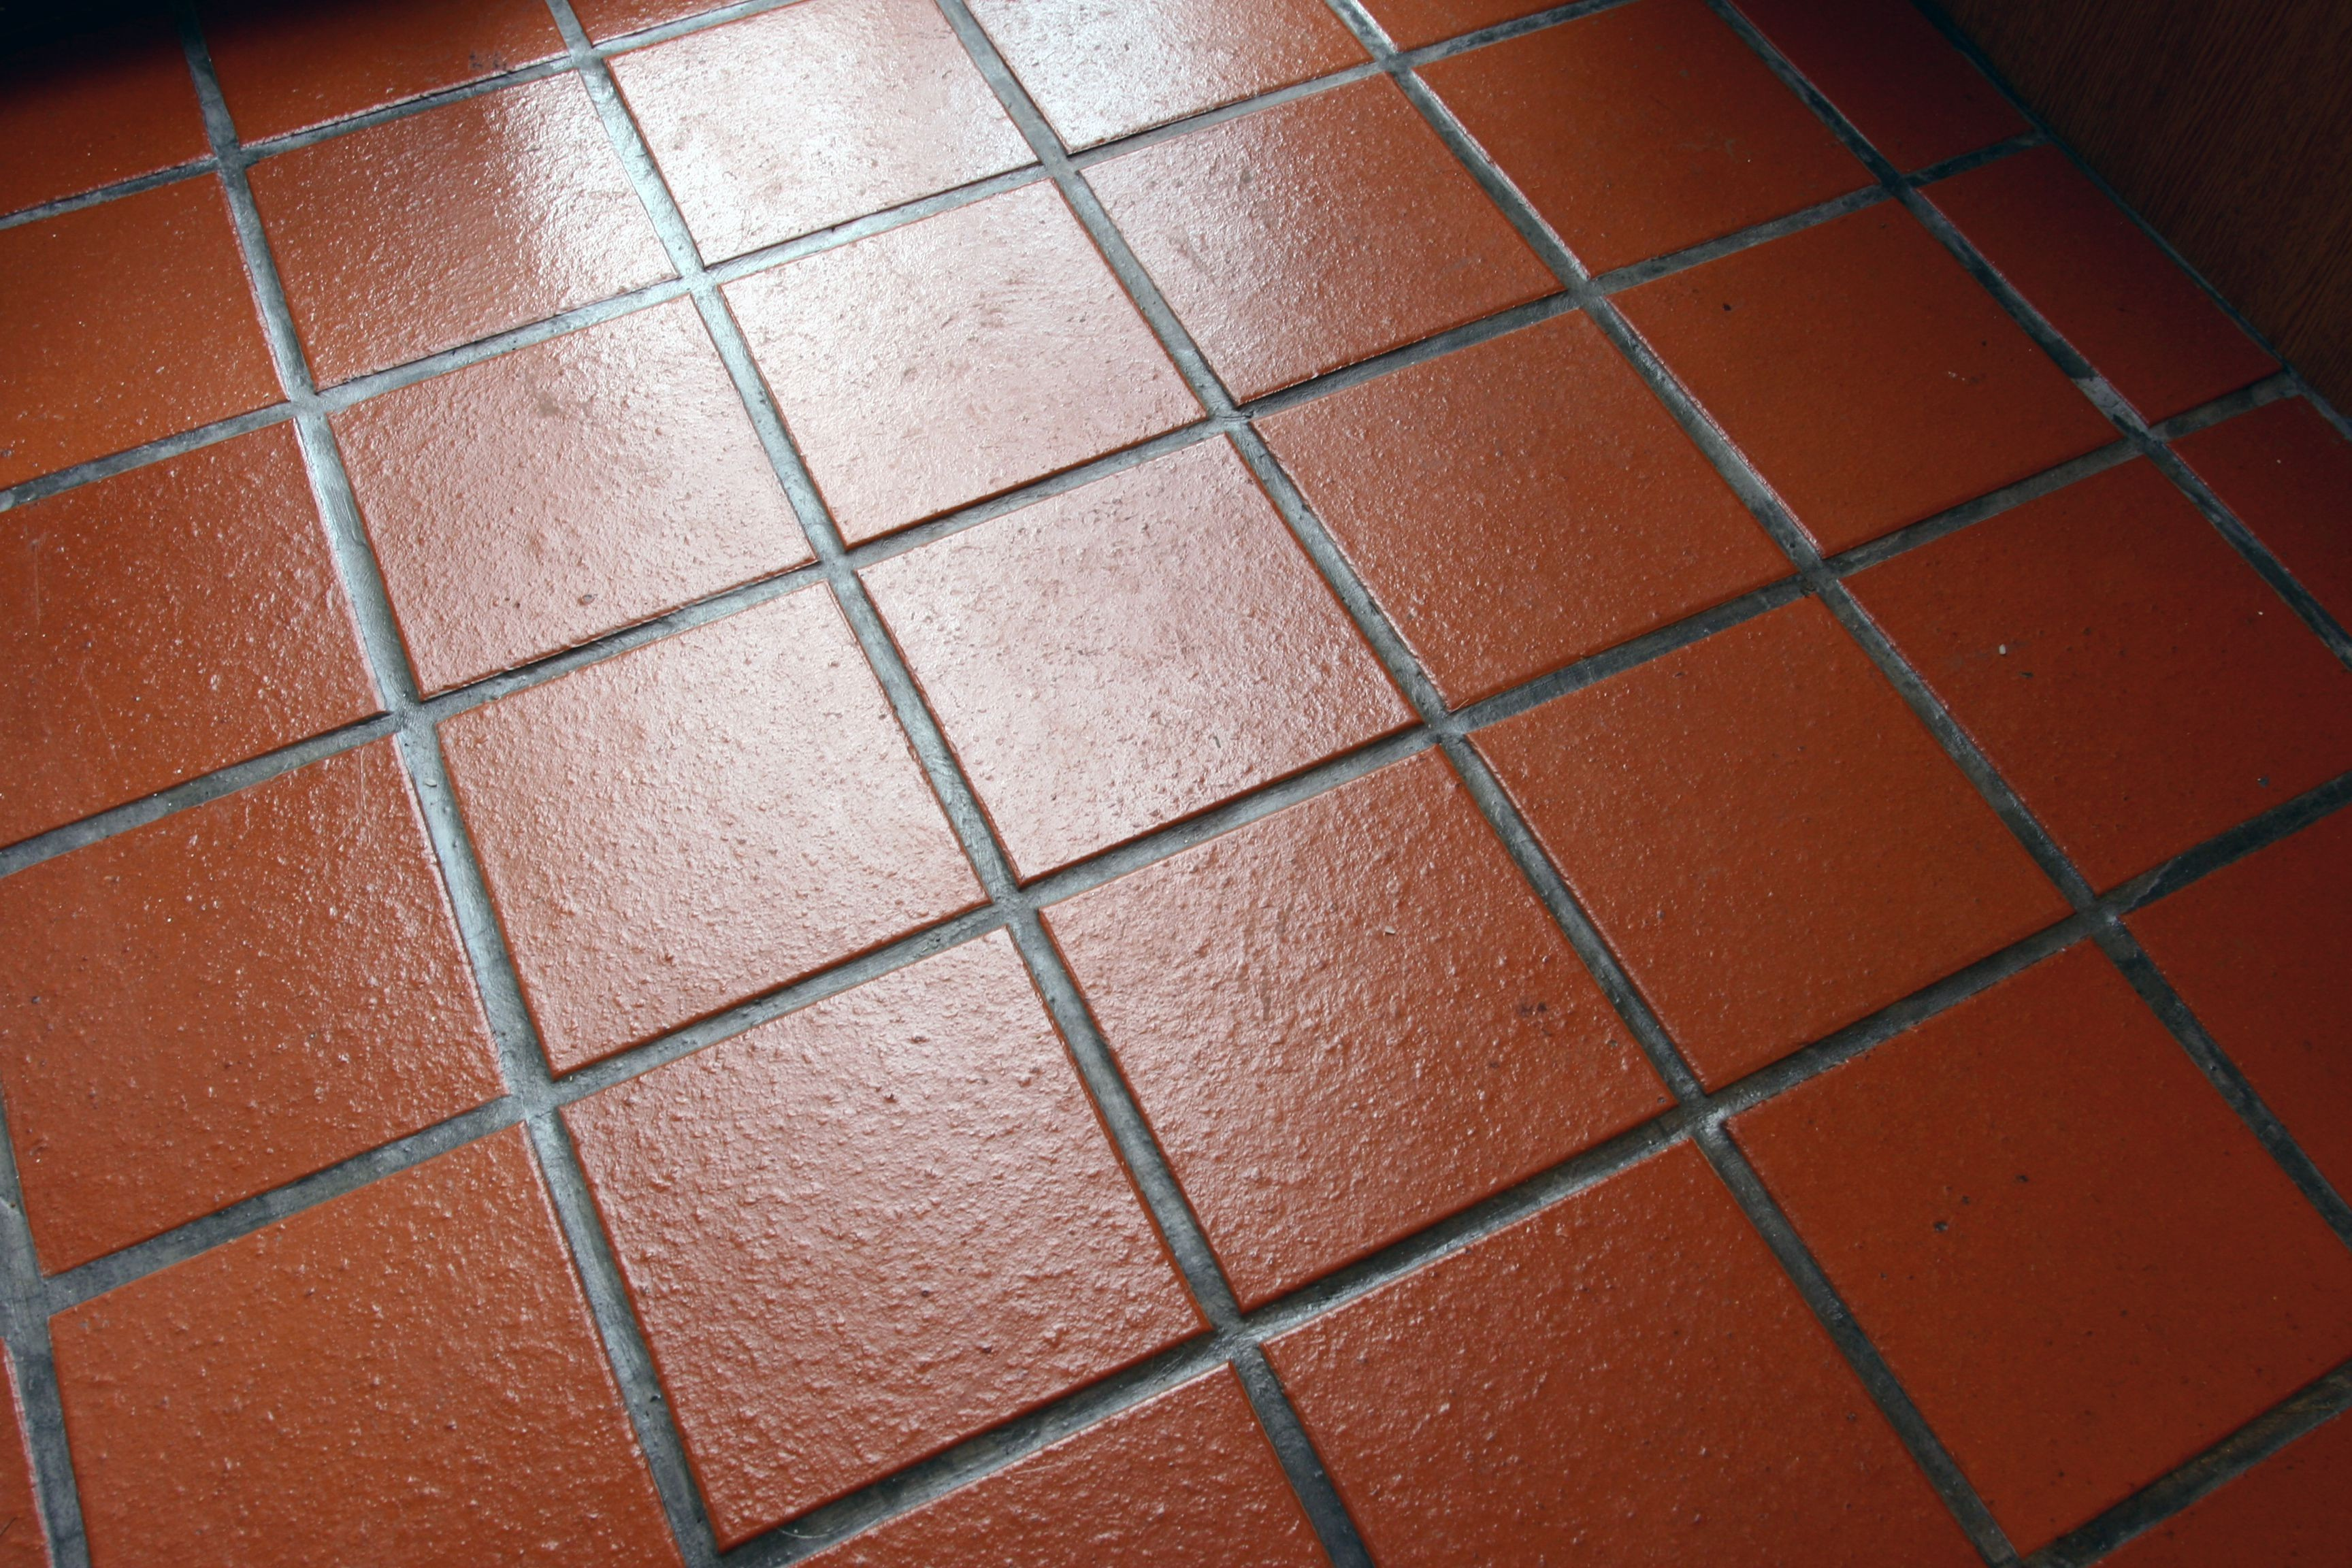 How To Change Color Of Ceramic Tile